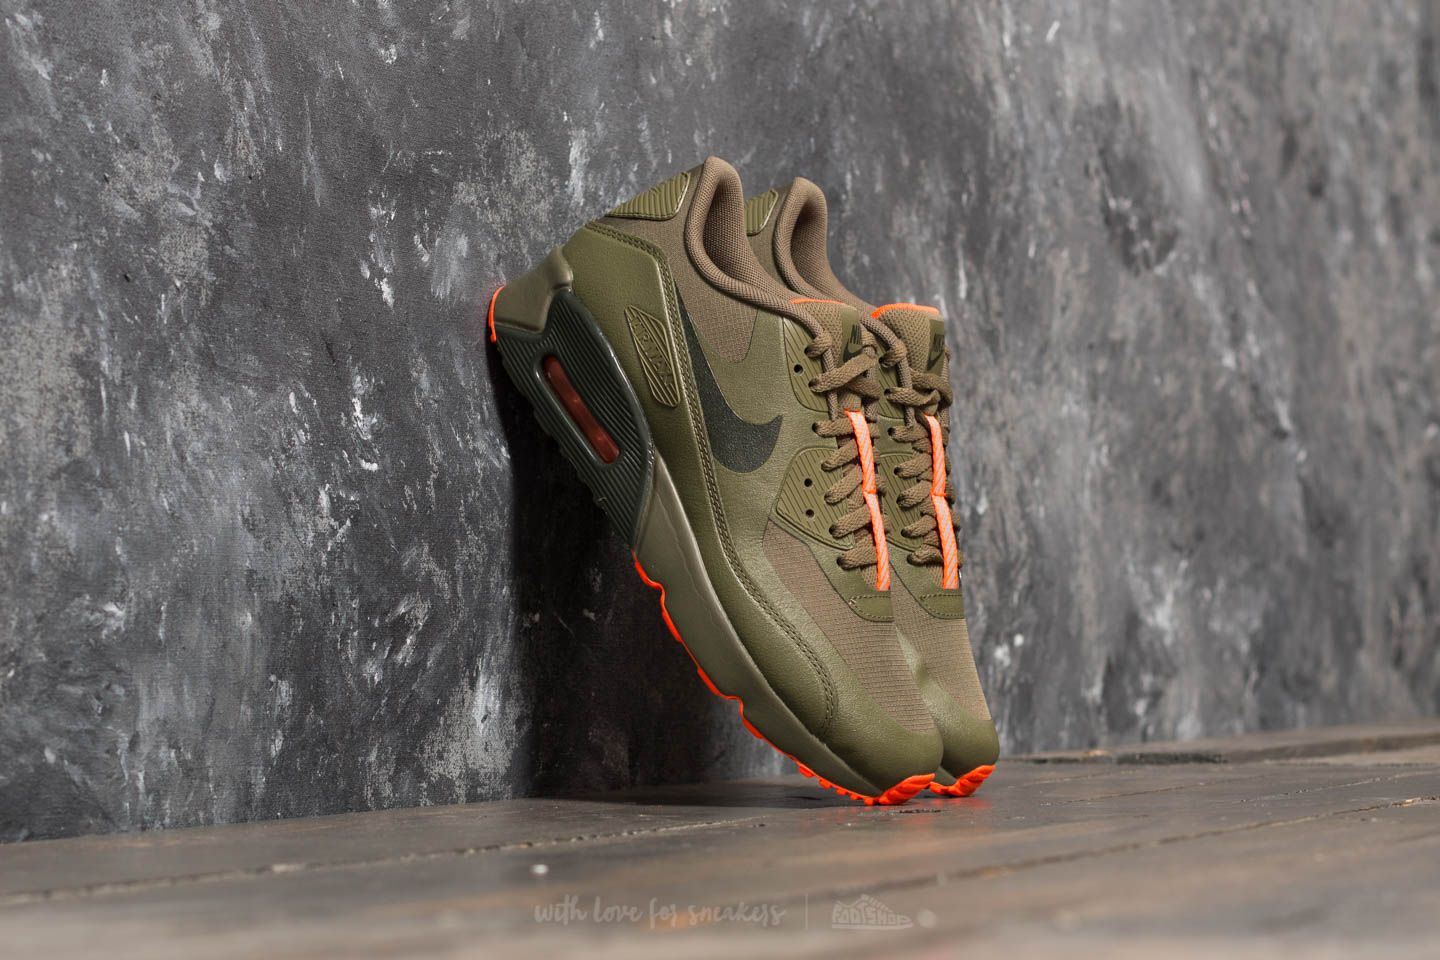 grand choix de 1fa9d d1830 Nike Air Max 90 Ultra 2.0 LE (GS) Medium Olive/ Sequoia ...